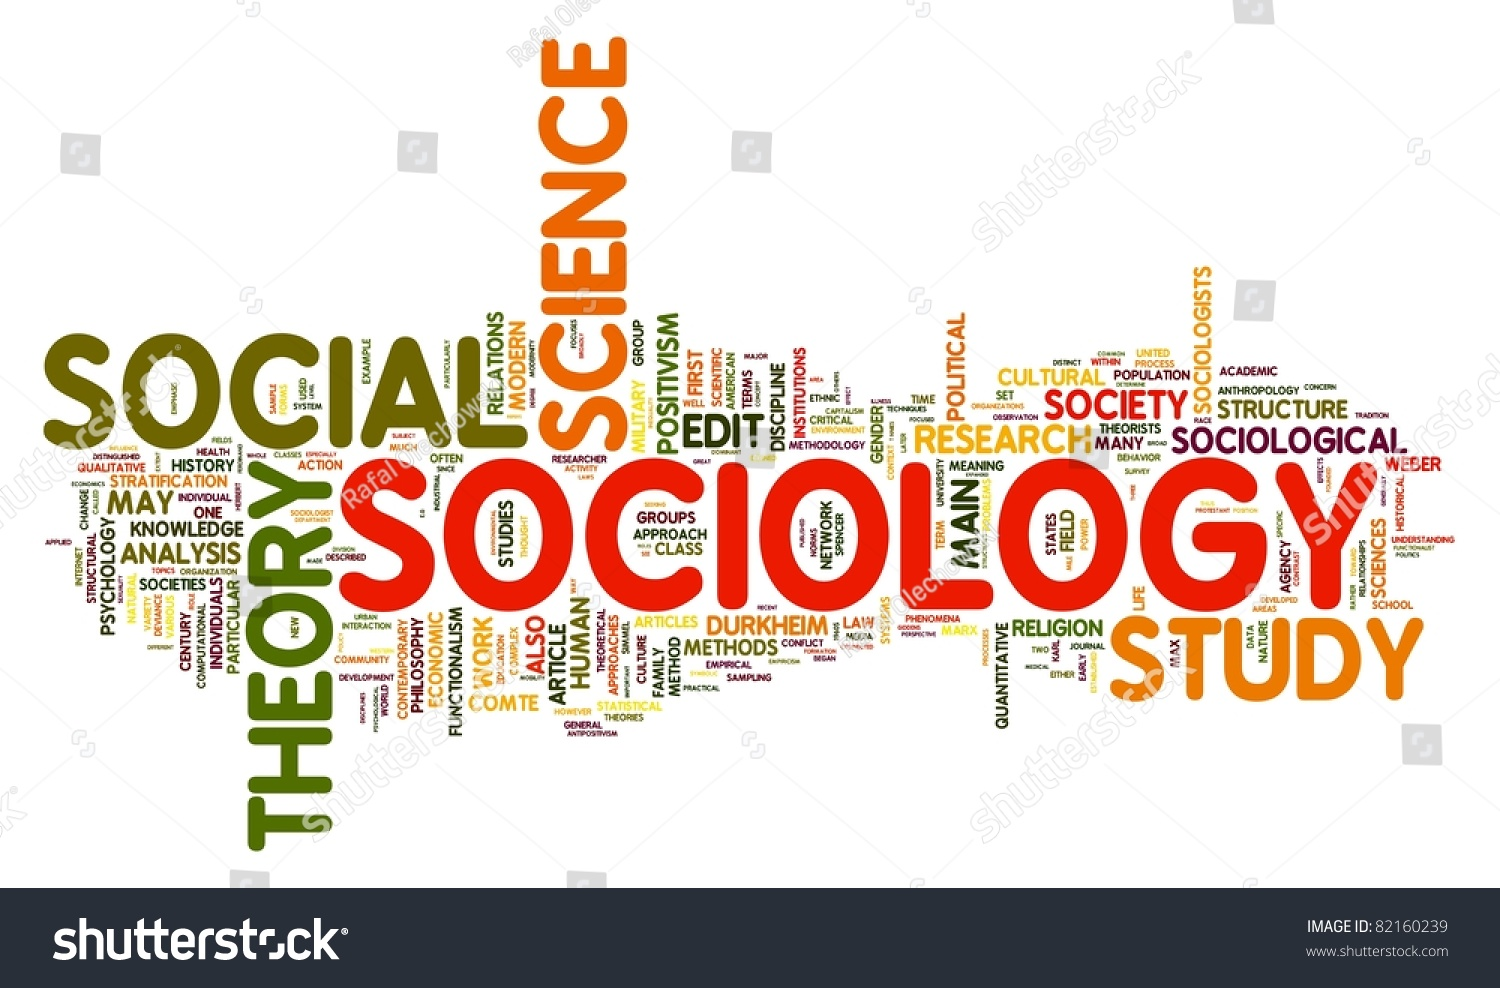 sociology concept word tag cloud stock illustration  sociology concept in word tag cloud